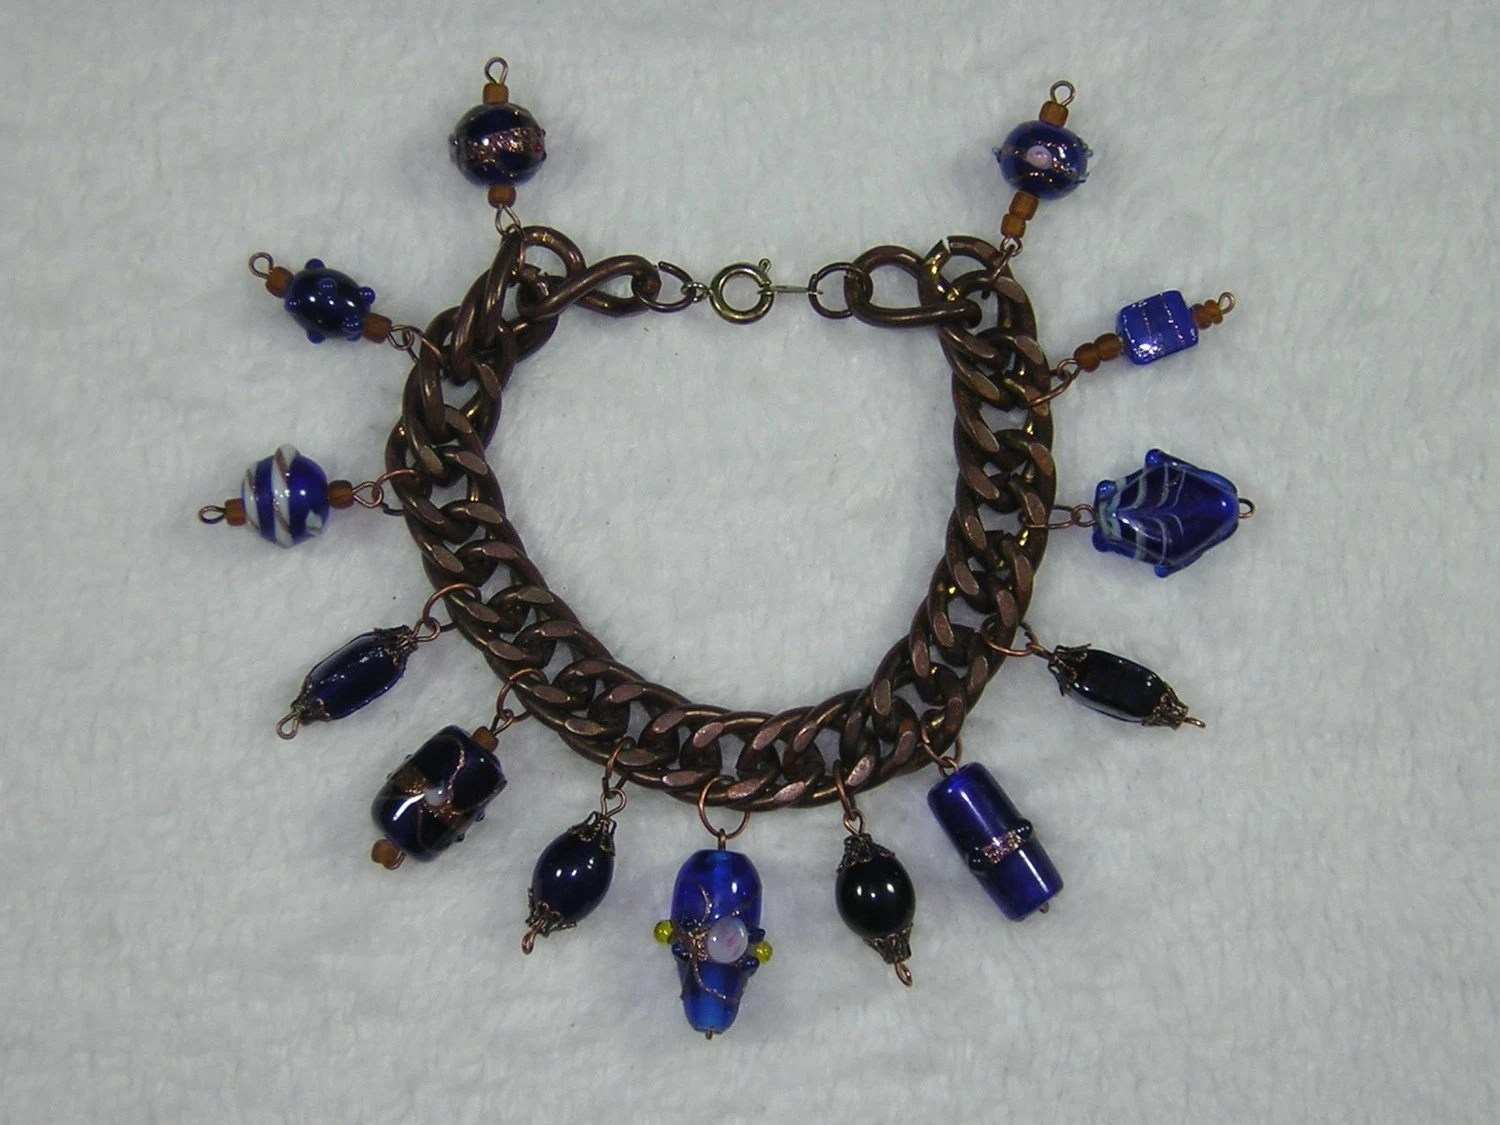 One of a Kind Blue and Copper Beaded Charm Bracelet - Handmade by Rewondered D225B-00010 - $34.95